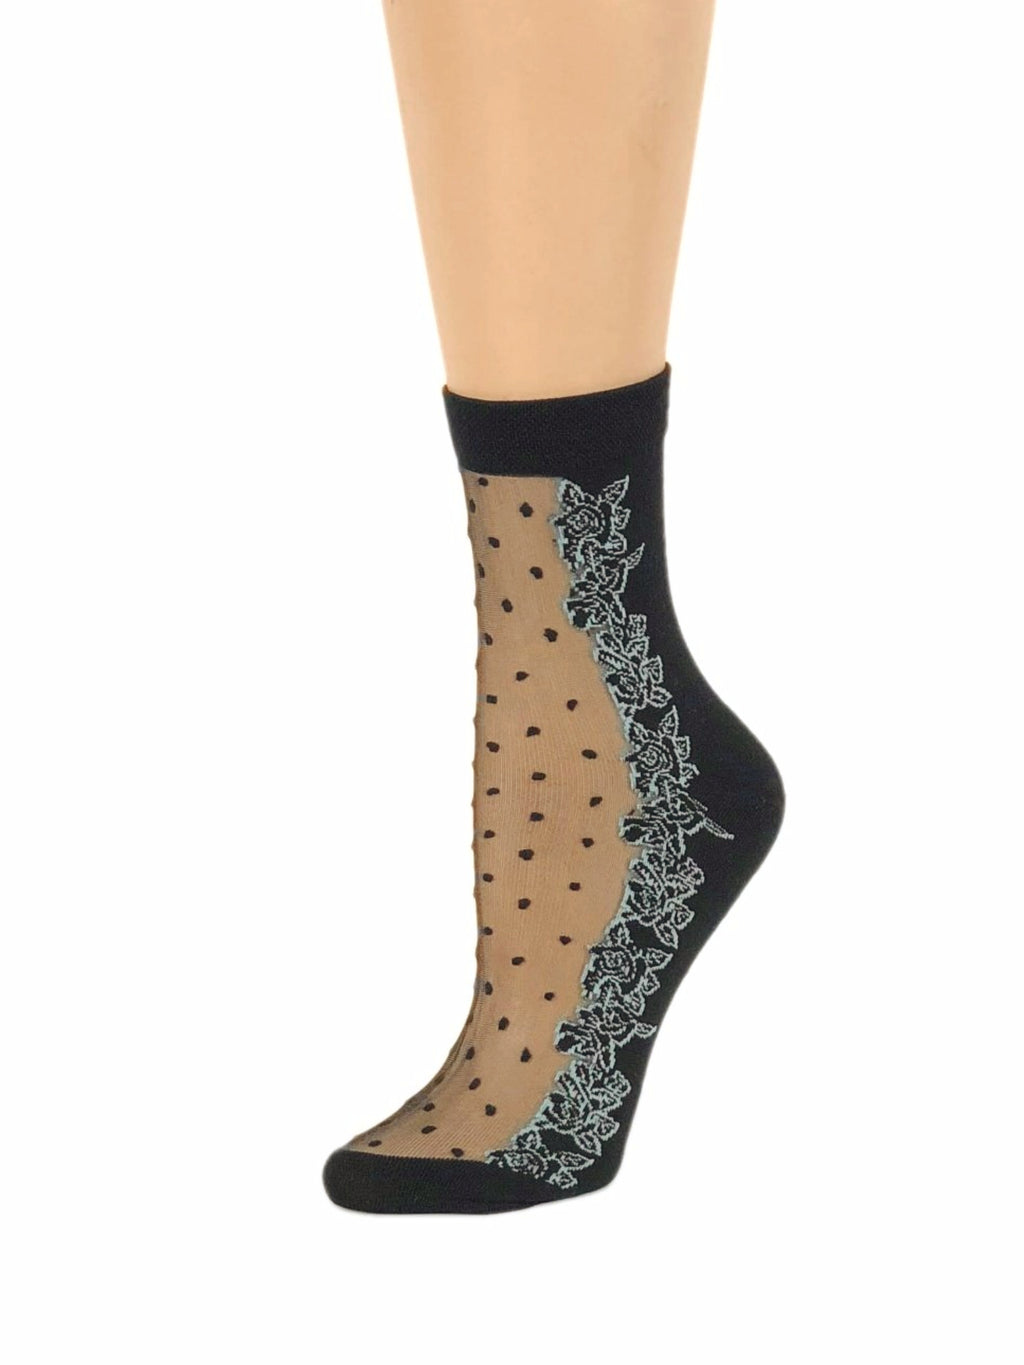 Sea Blue Flowers Sheer Socks - Global Trendz Fashion®